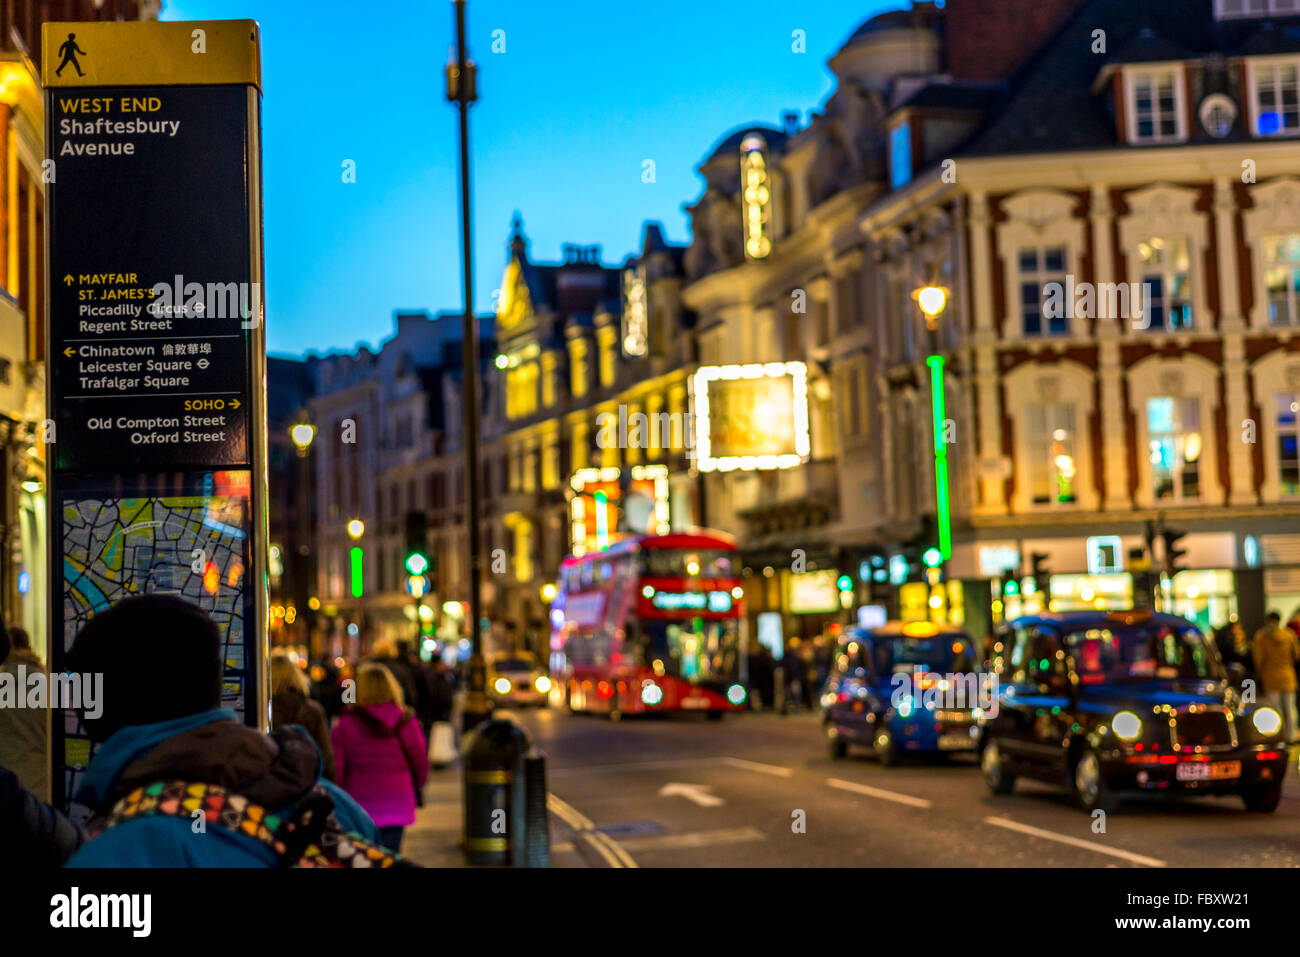 Directions board  showing directions from Shaftesbury Avenue, London against a nice colorful background - Stock Image